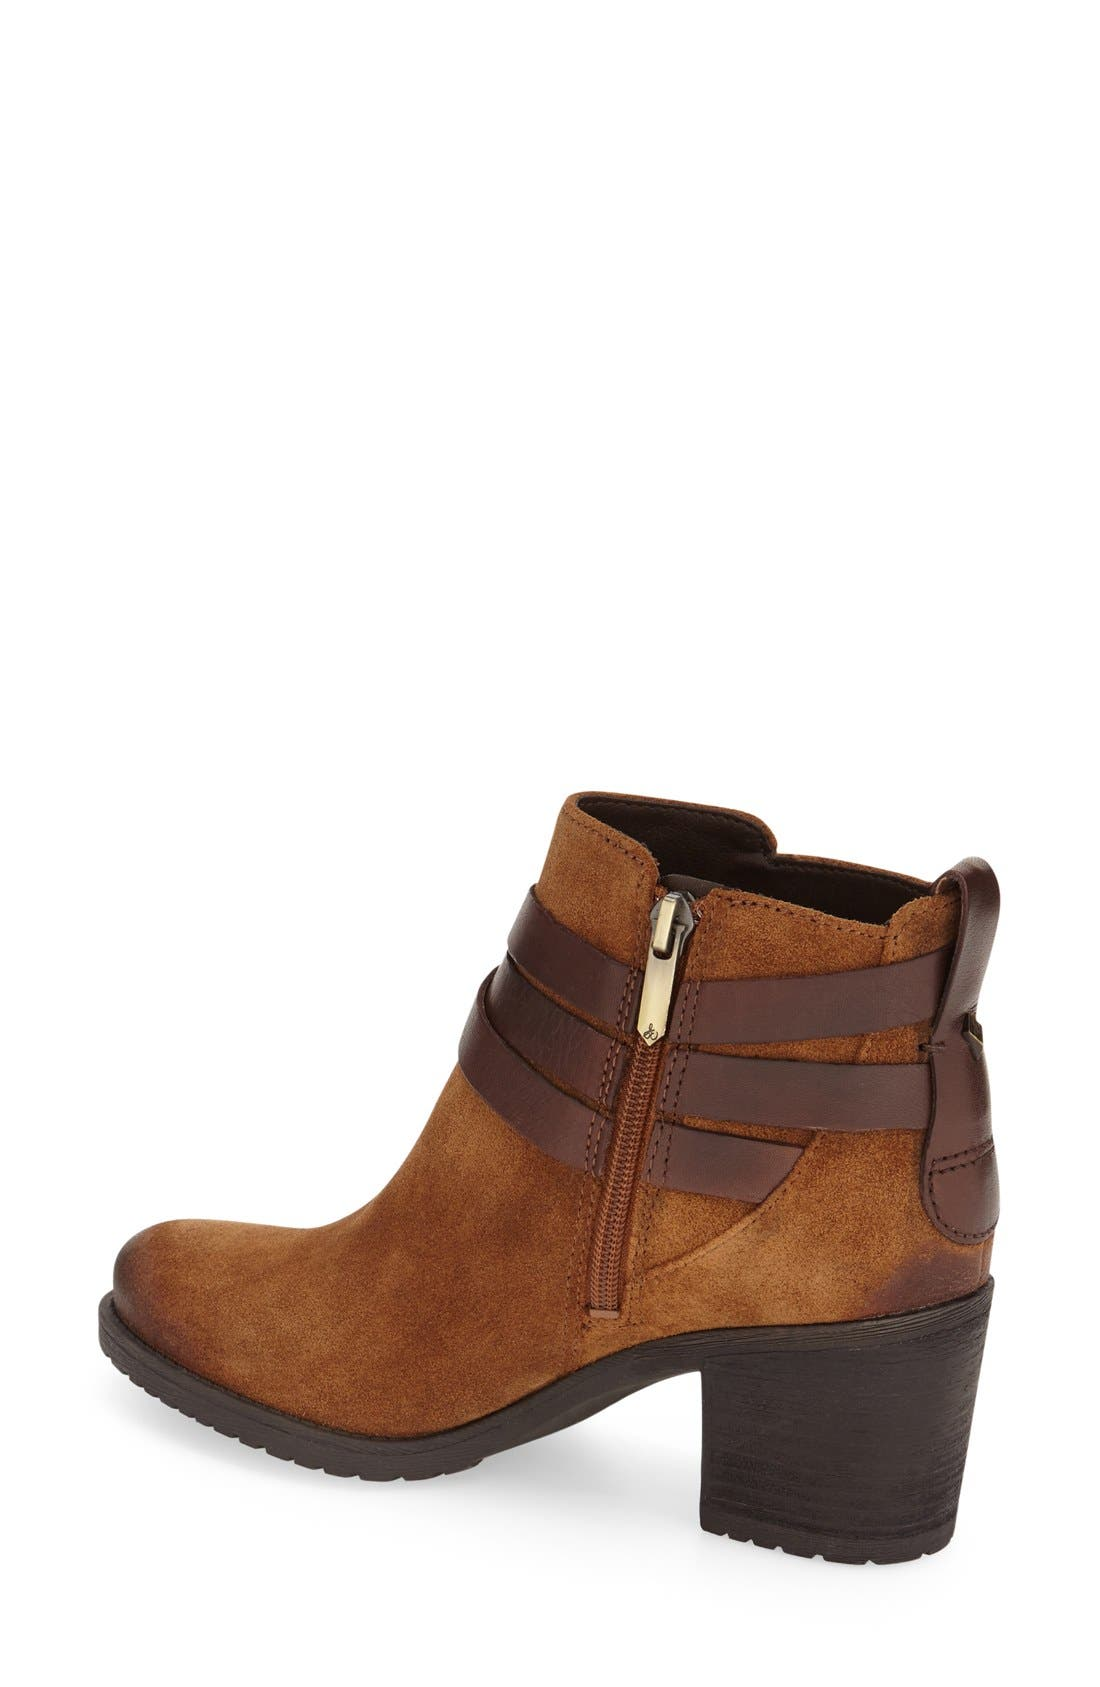 'Hannah' Belted Chelsea Bootie,                             Alternate thumbnail 2, color,                             Mocha Latte/ Sienna